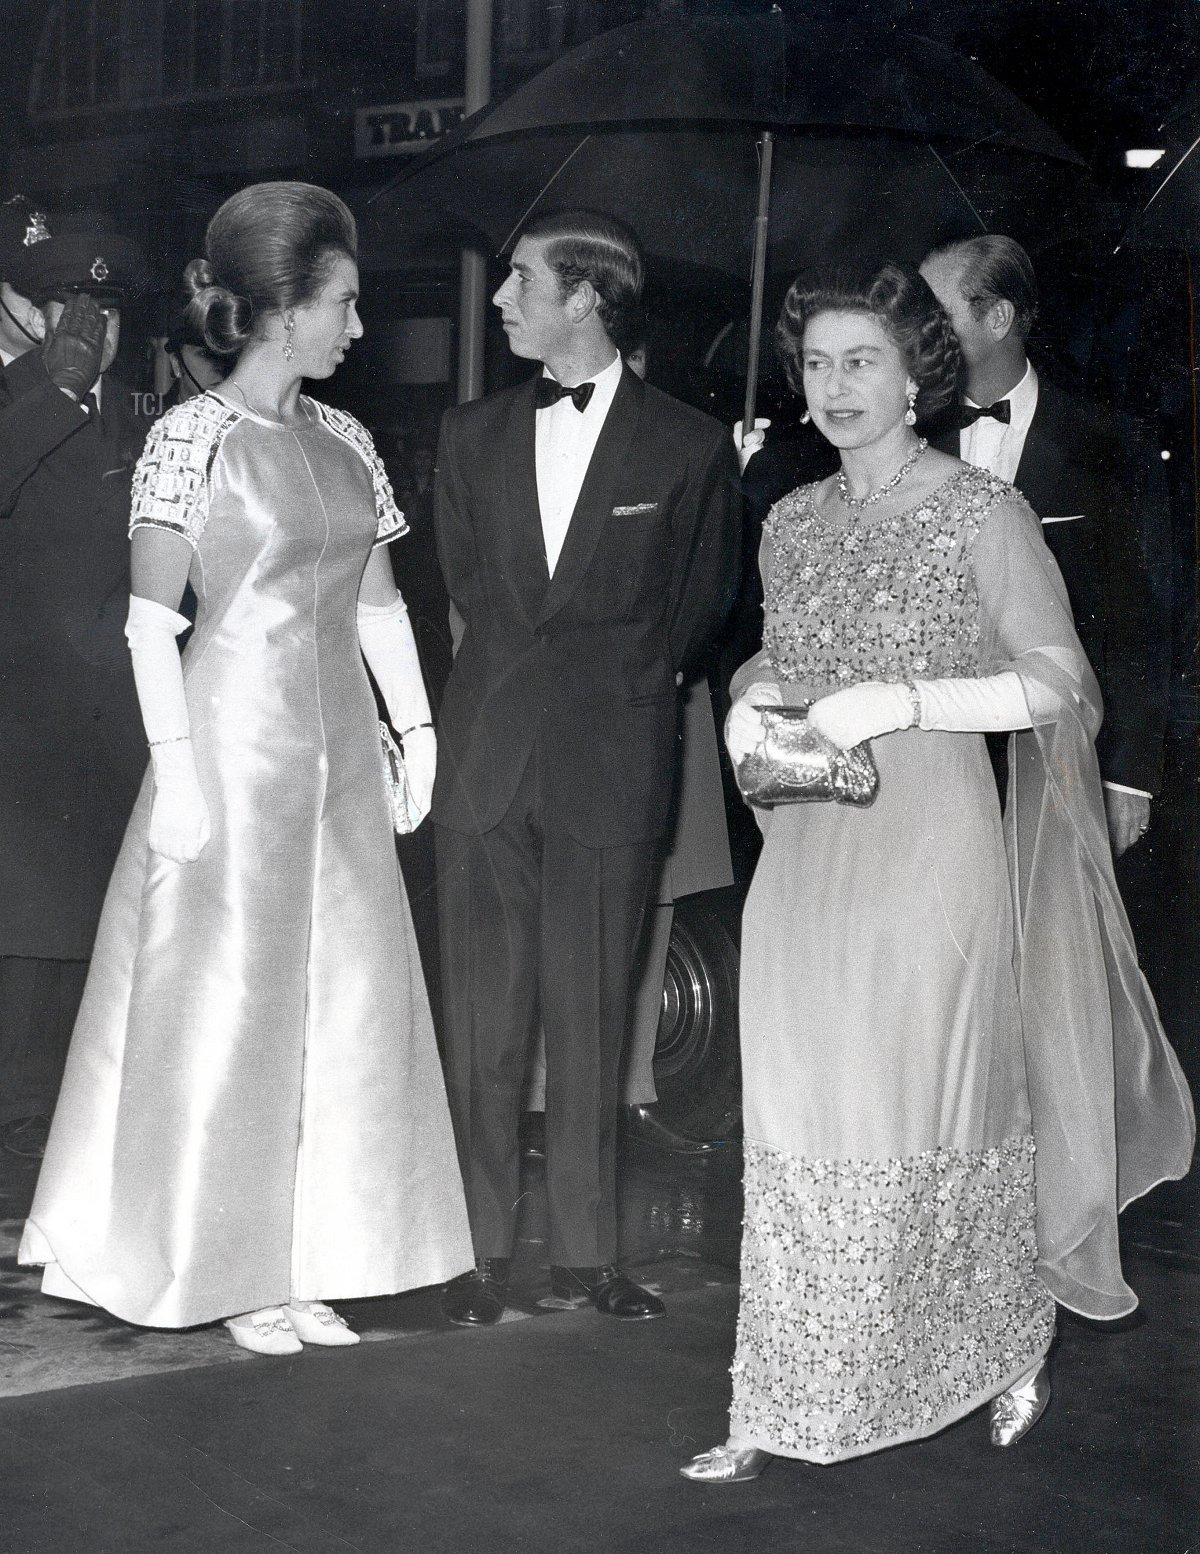 Nov. 18, 1970 - Queen Elizabeth II, Prince Philip, Prince Charles, and Princess Anne attend the Royal Gala in Aid of the World Wildlife Fund